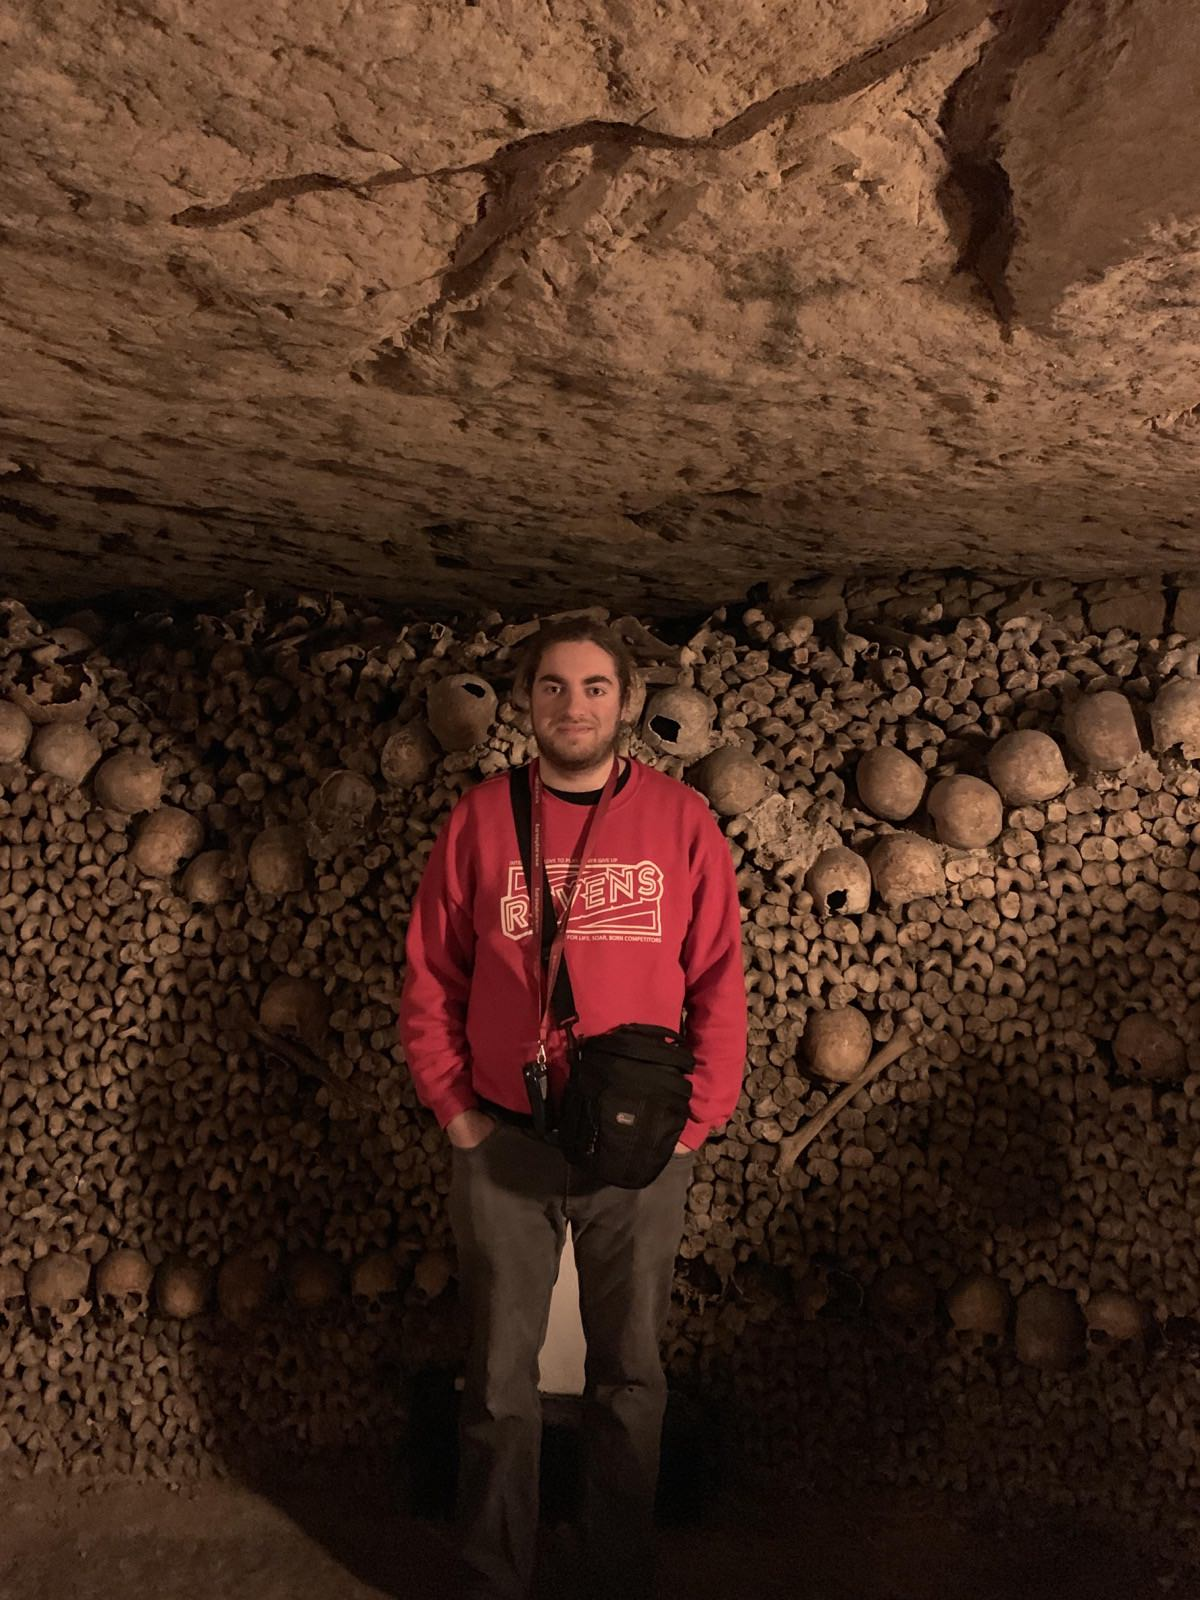 Forest in the Catacombs